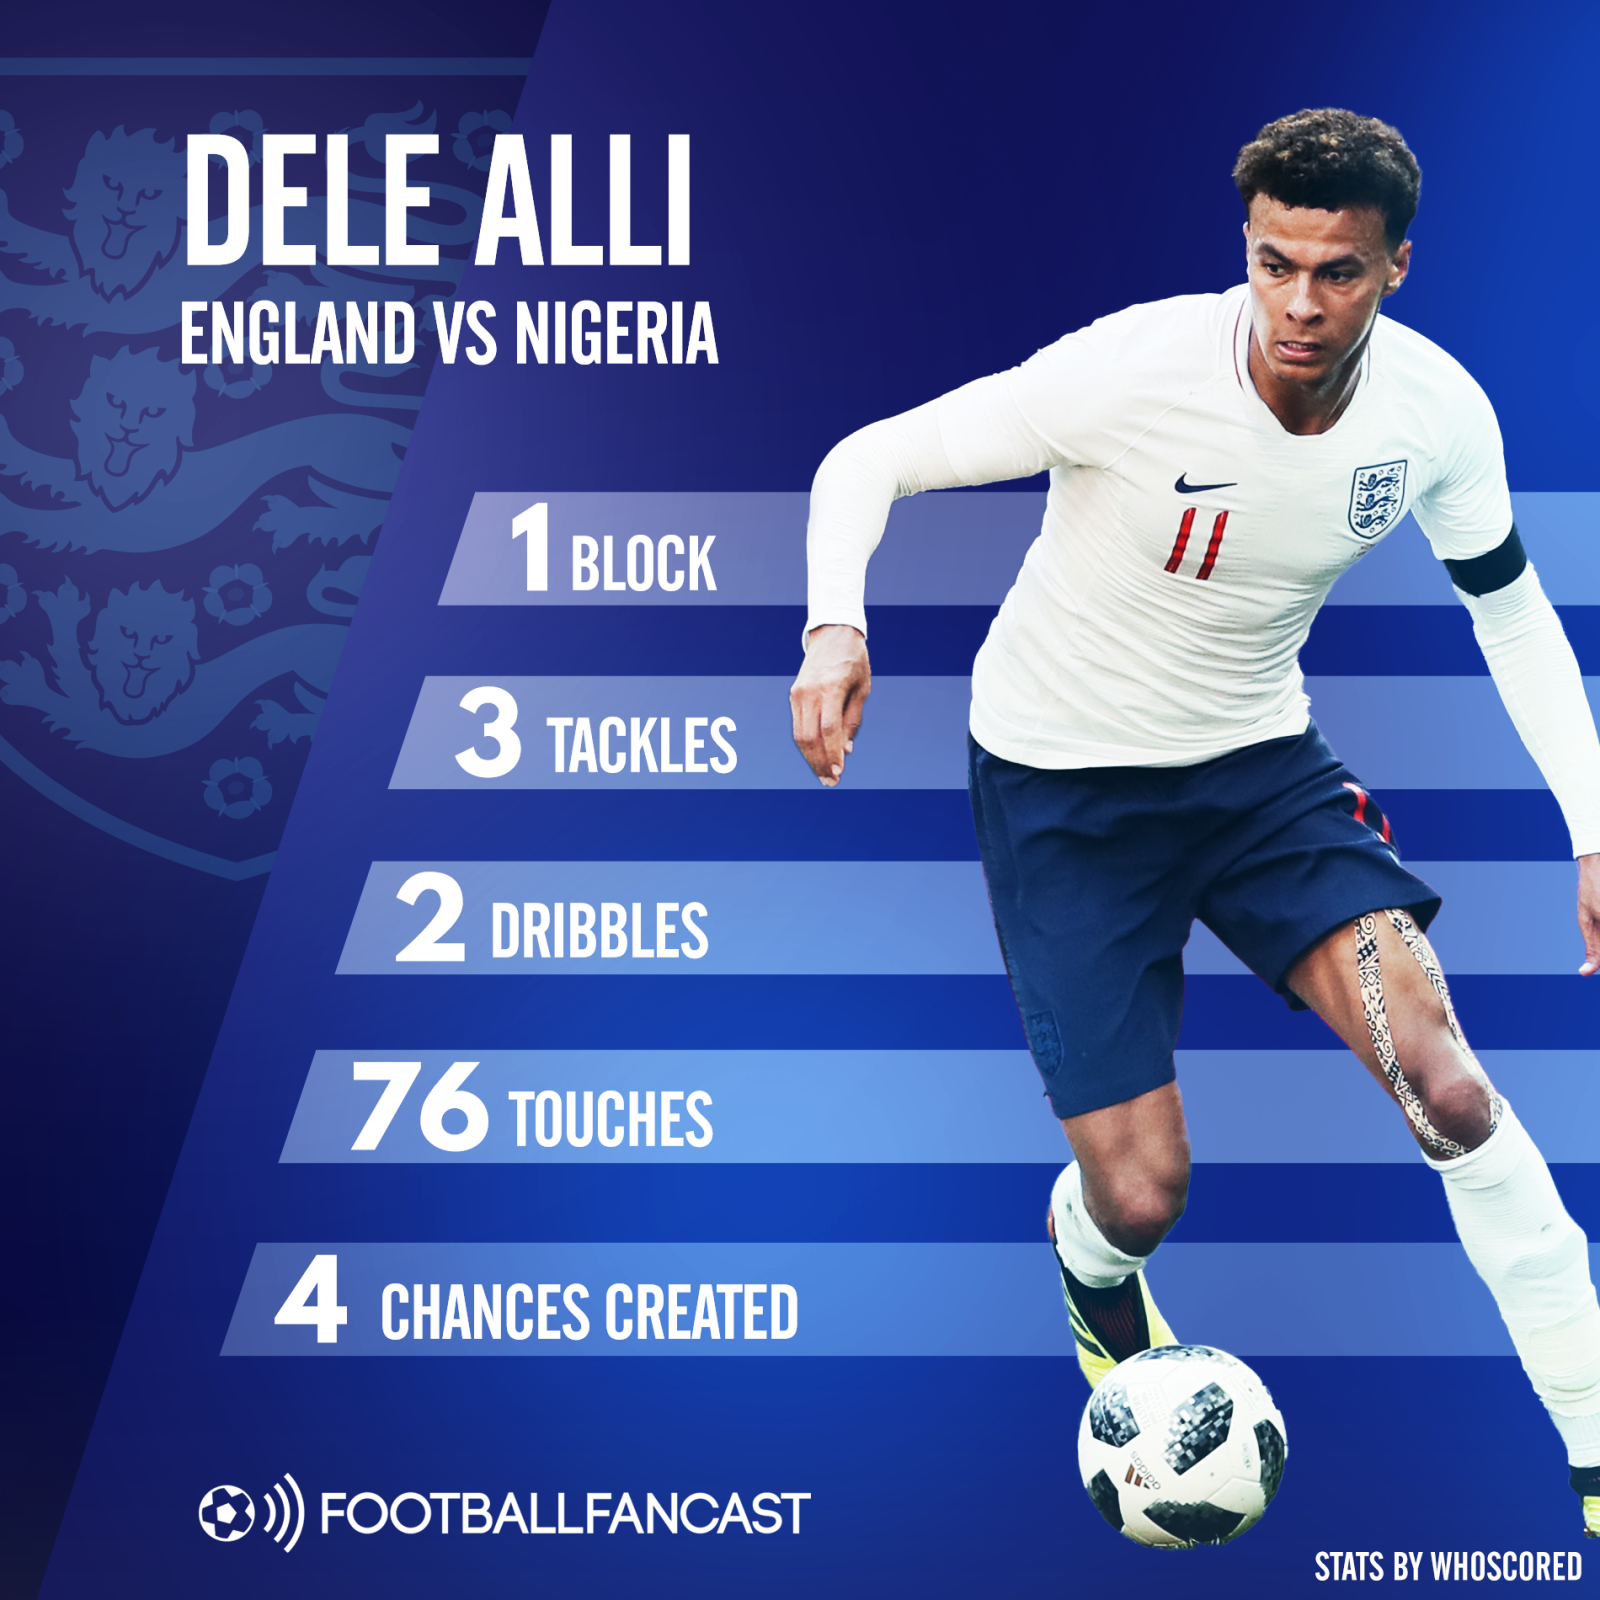 Dele Alli's stats from England's win over Nigeria